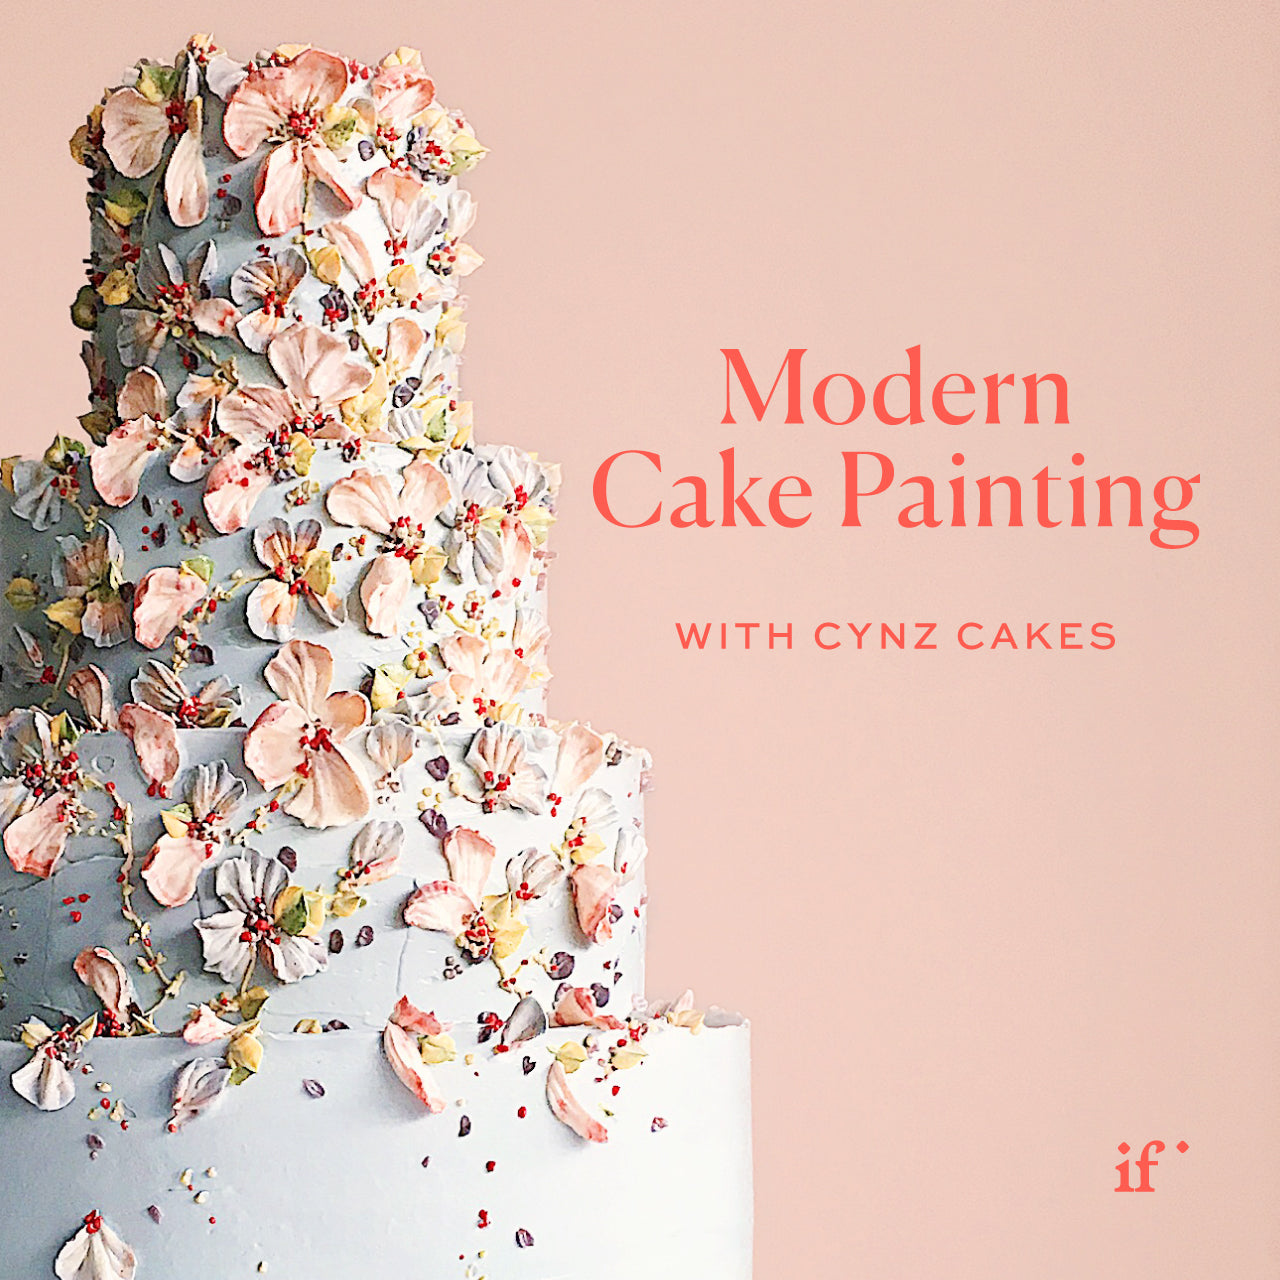 Payment Plan Sale: Modern Cake Painting with Cynz Cakes - 4 Monthly Payments of $99